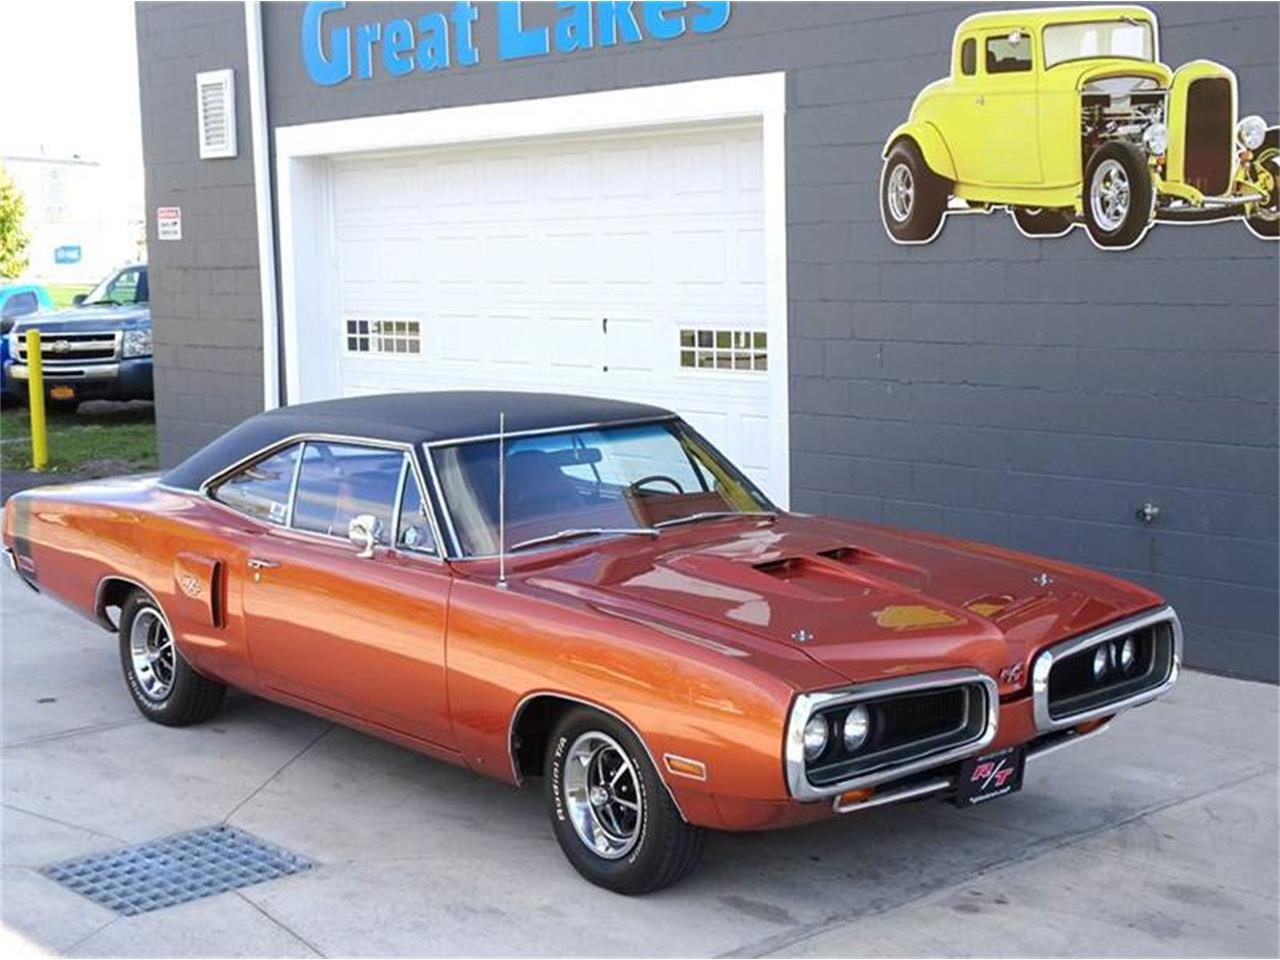 Large Picture of '70 Coronet Offered by Great Lakes Classic Cars - MAT8